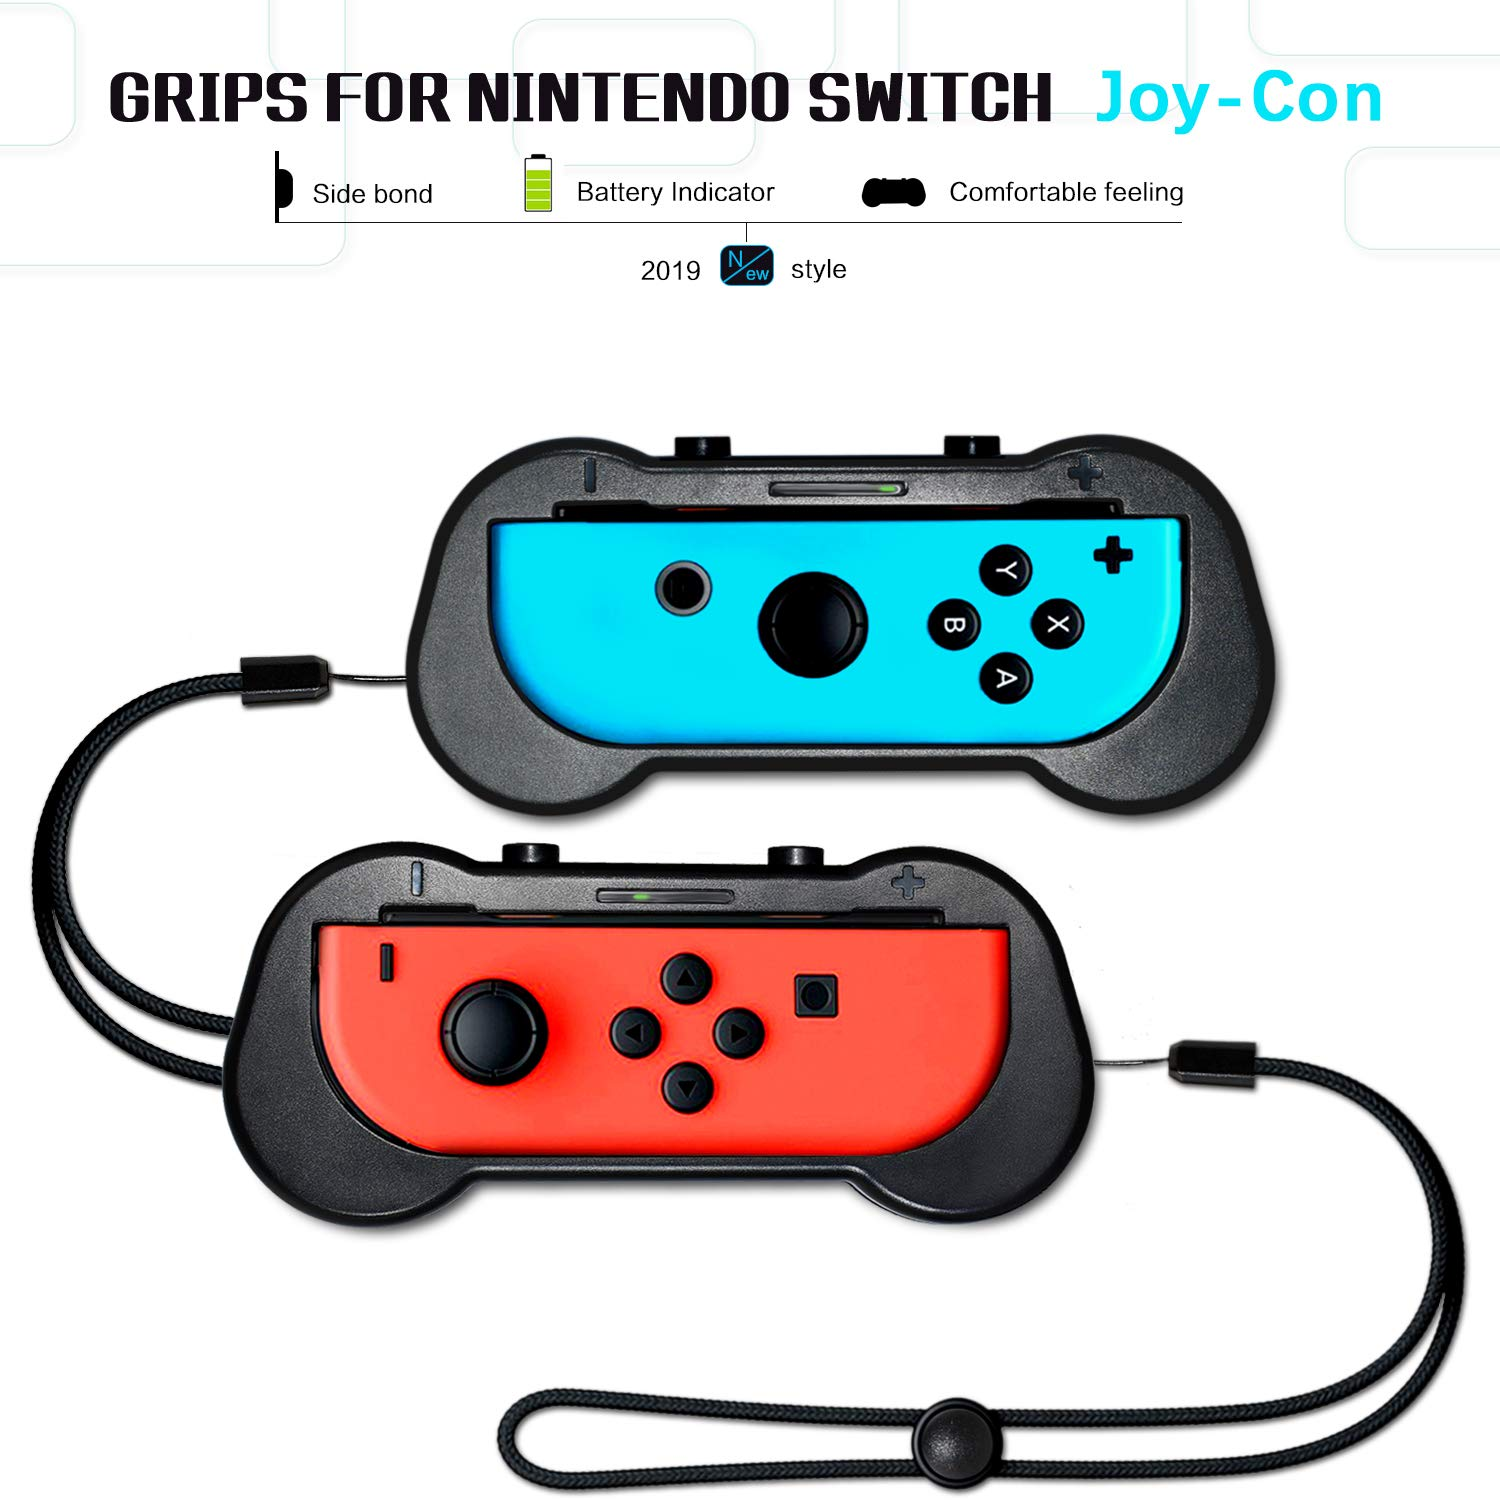 Joy-Con Grips for Nintendo Switch Controllers, Wear-resistant Controller Grips/ Joy-Con Handle Kit/ Thumb Grips ( L& R ) for Nintendo Switch, Game Accessories ( Black, 2Pack) by myjiajia